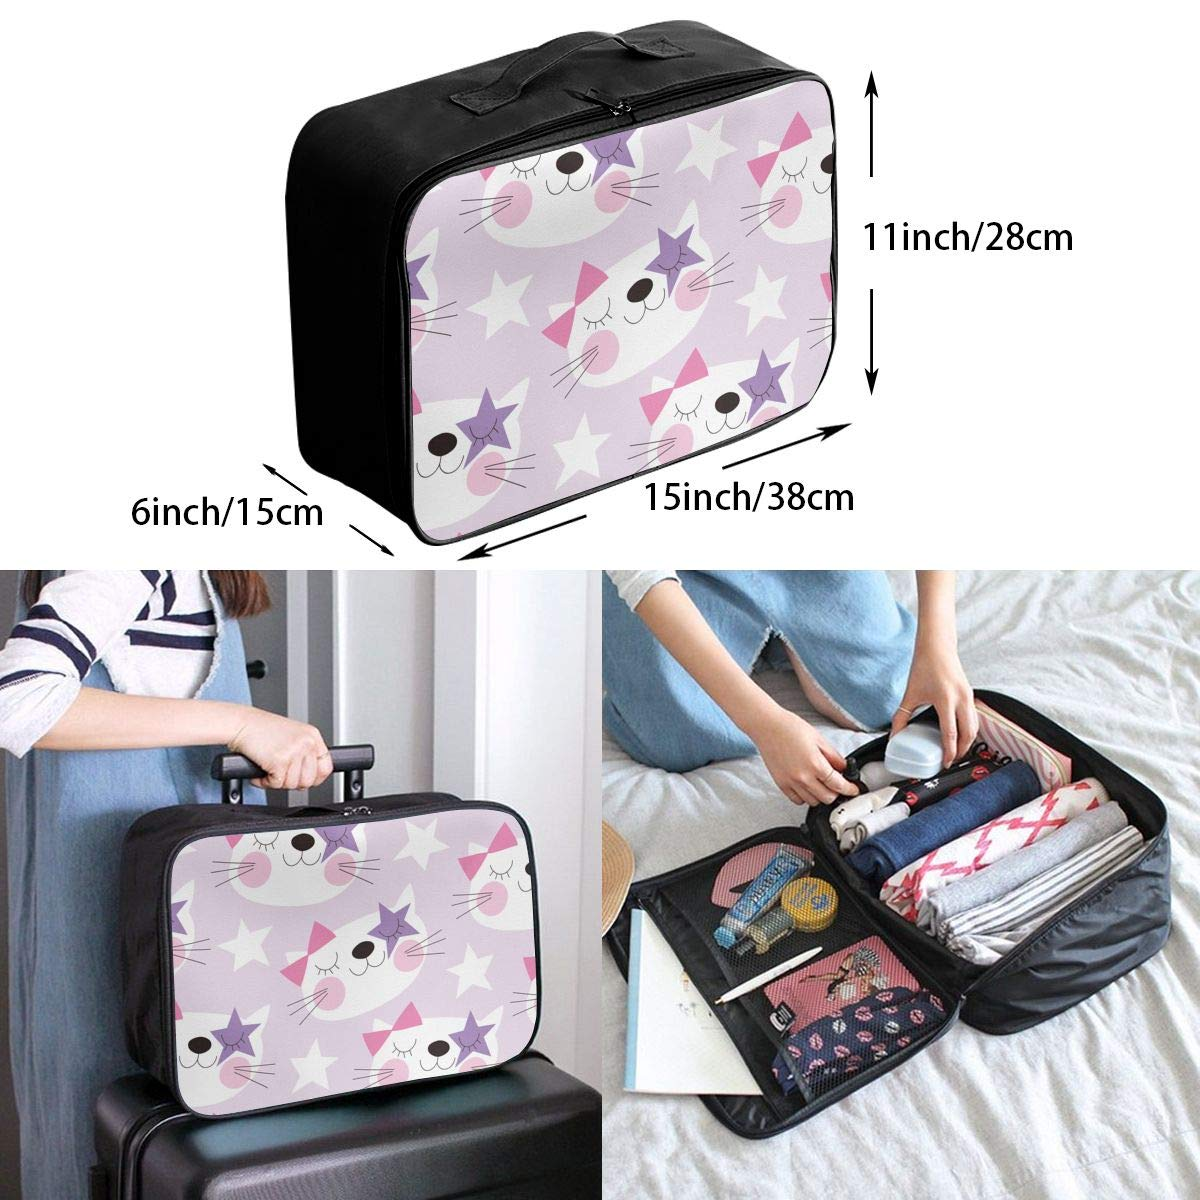 Cute Star Cat Travel Duffel Bag Waterproof Fashion Lightweight Large Capacity Portable Luggage Bag